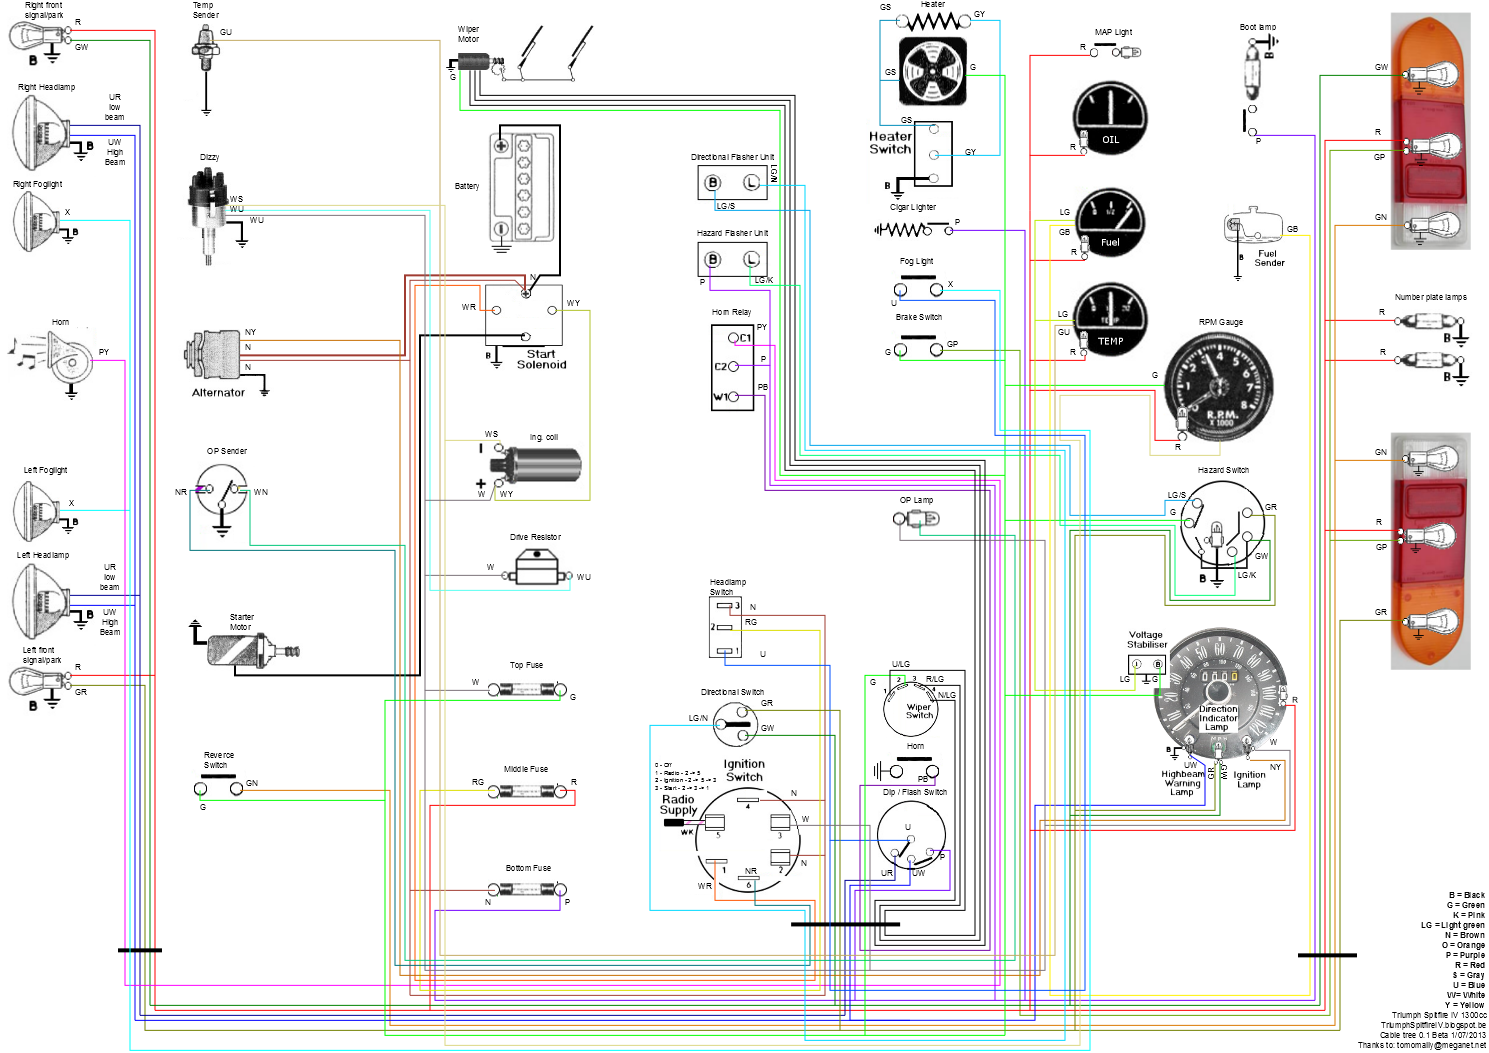 spitfire iv wiring diagram mk4 wiring diagram mk4 tdi wiring diagram \u2022 wiring diagrams j  at n-0.co